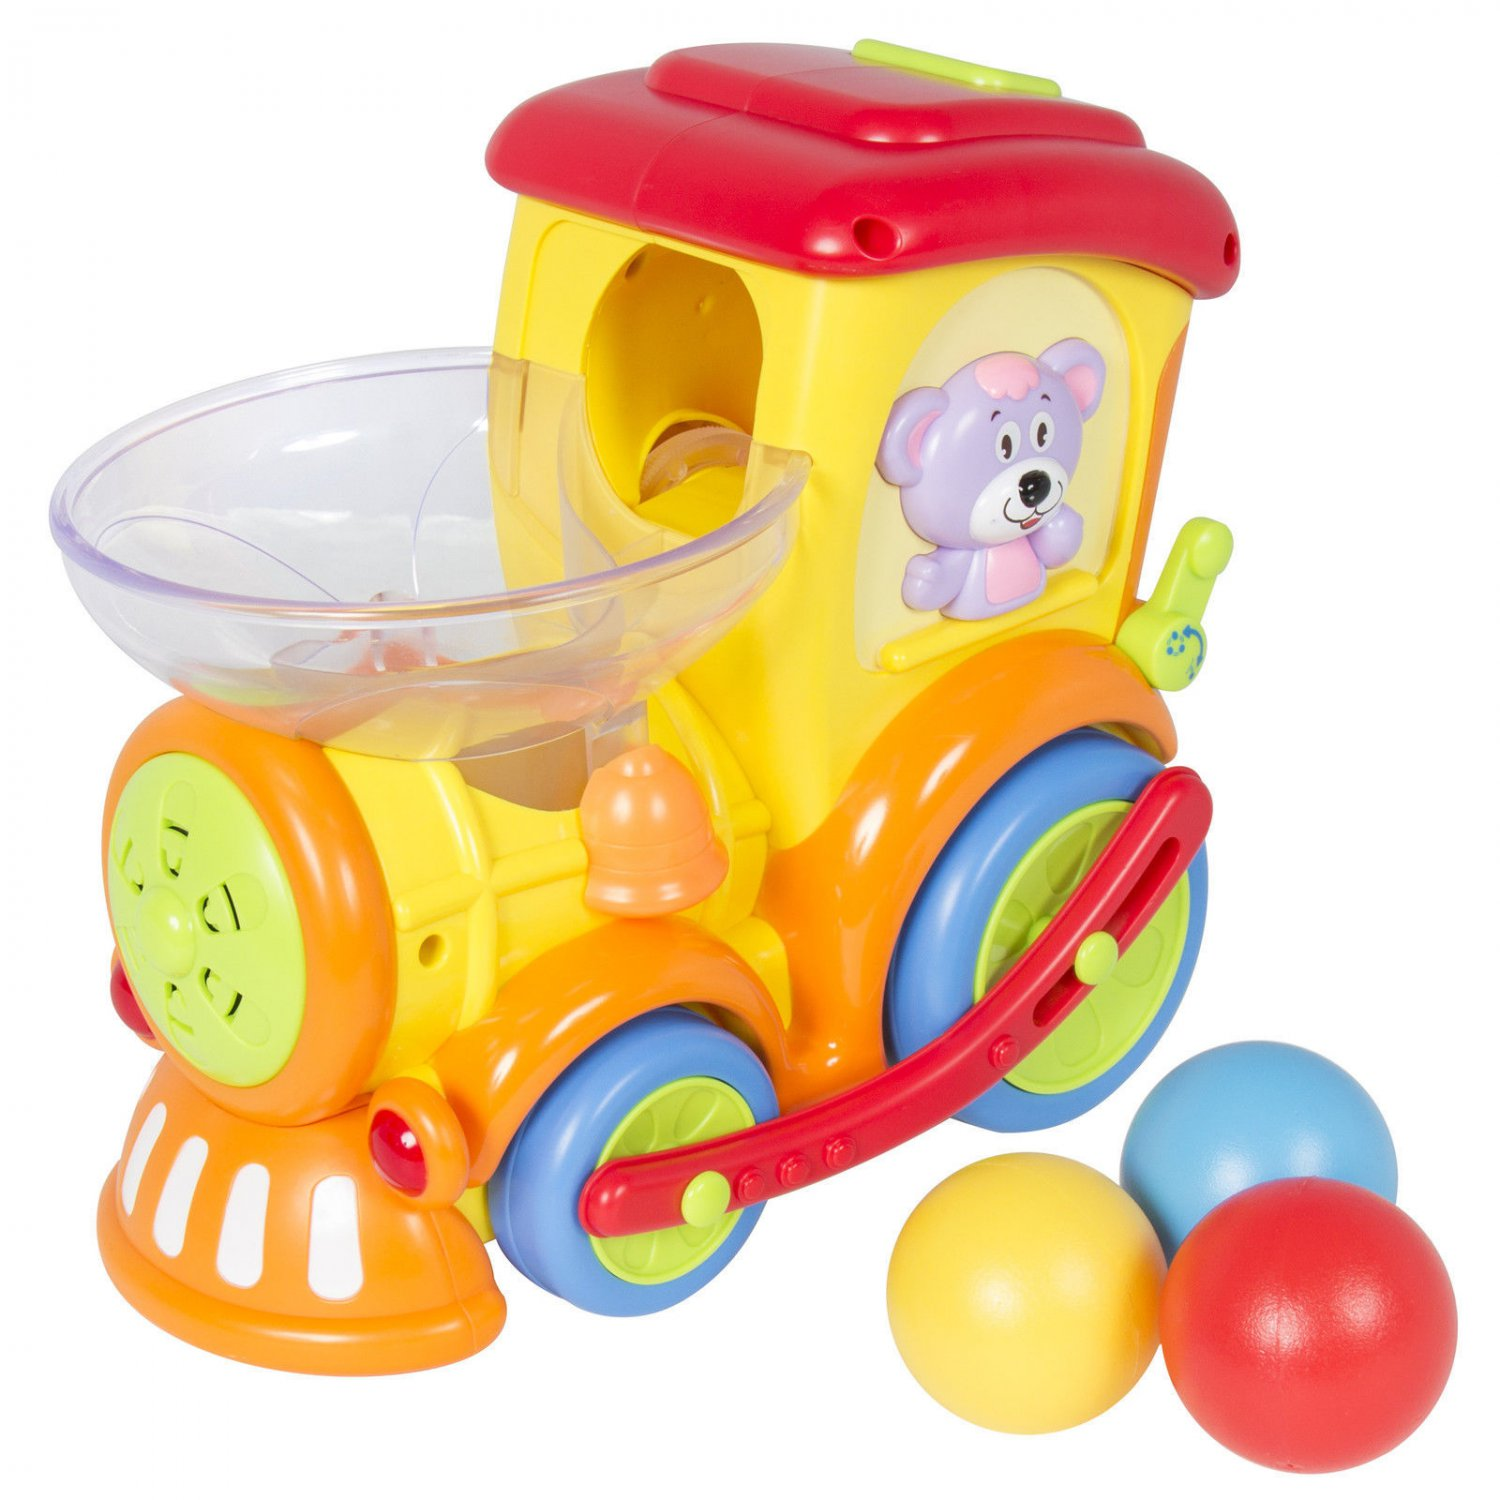 Electric Moving Train Toy With Chasing Balls Activity Lights Talks and Sings